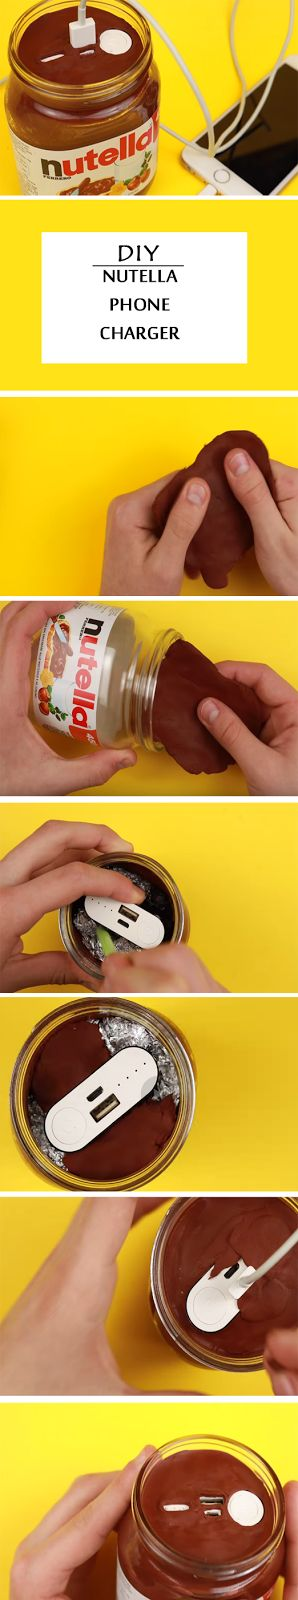 DIY tutorial on how to make a Nutella phone charger.